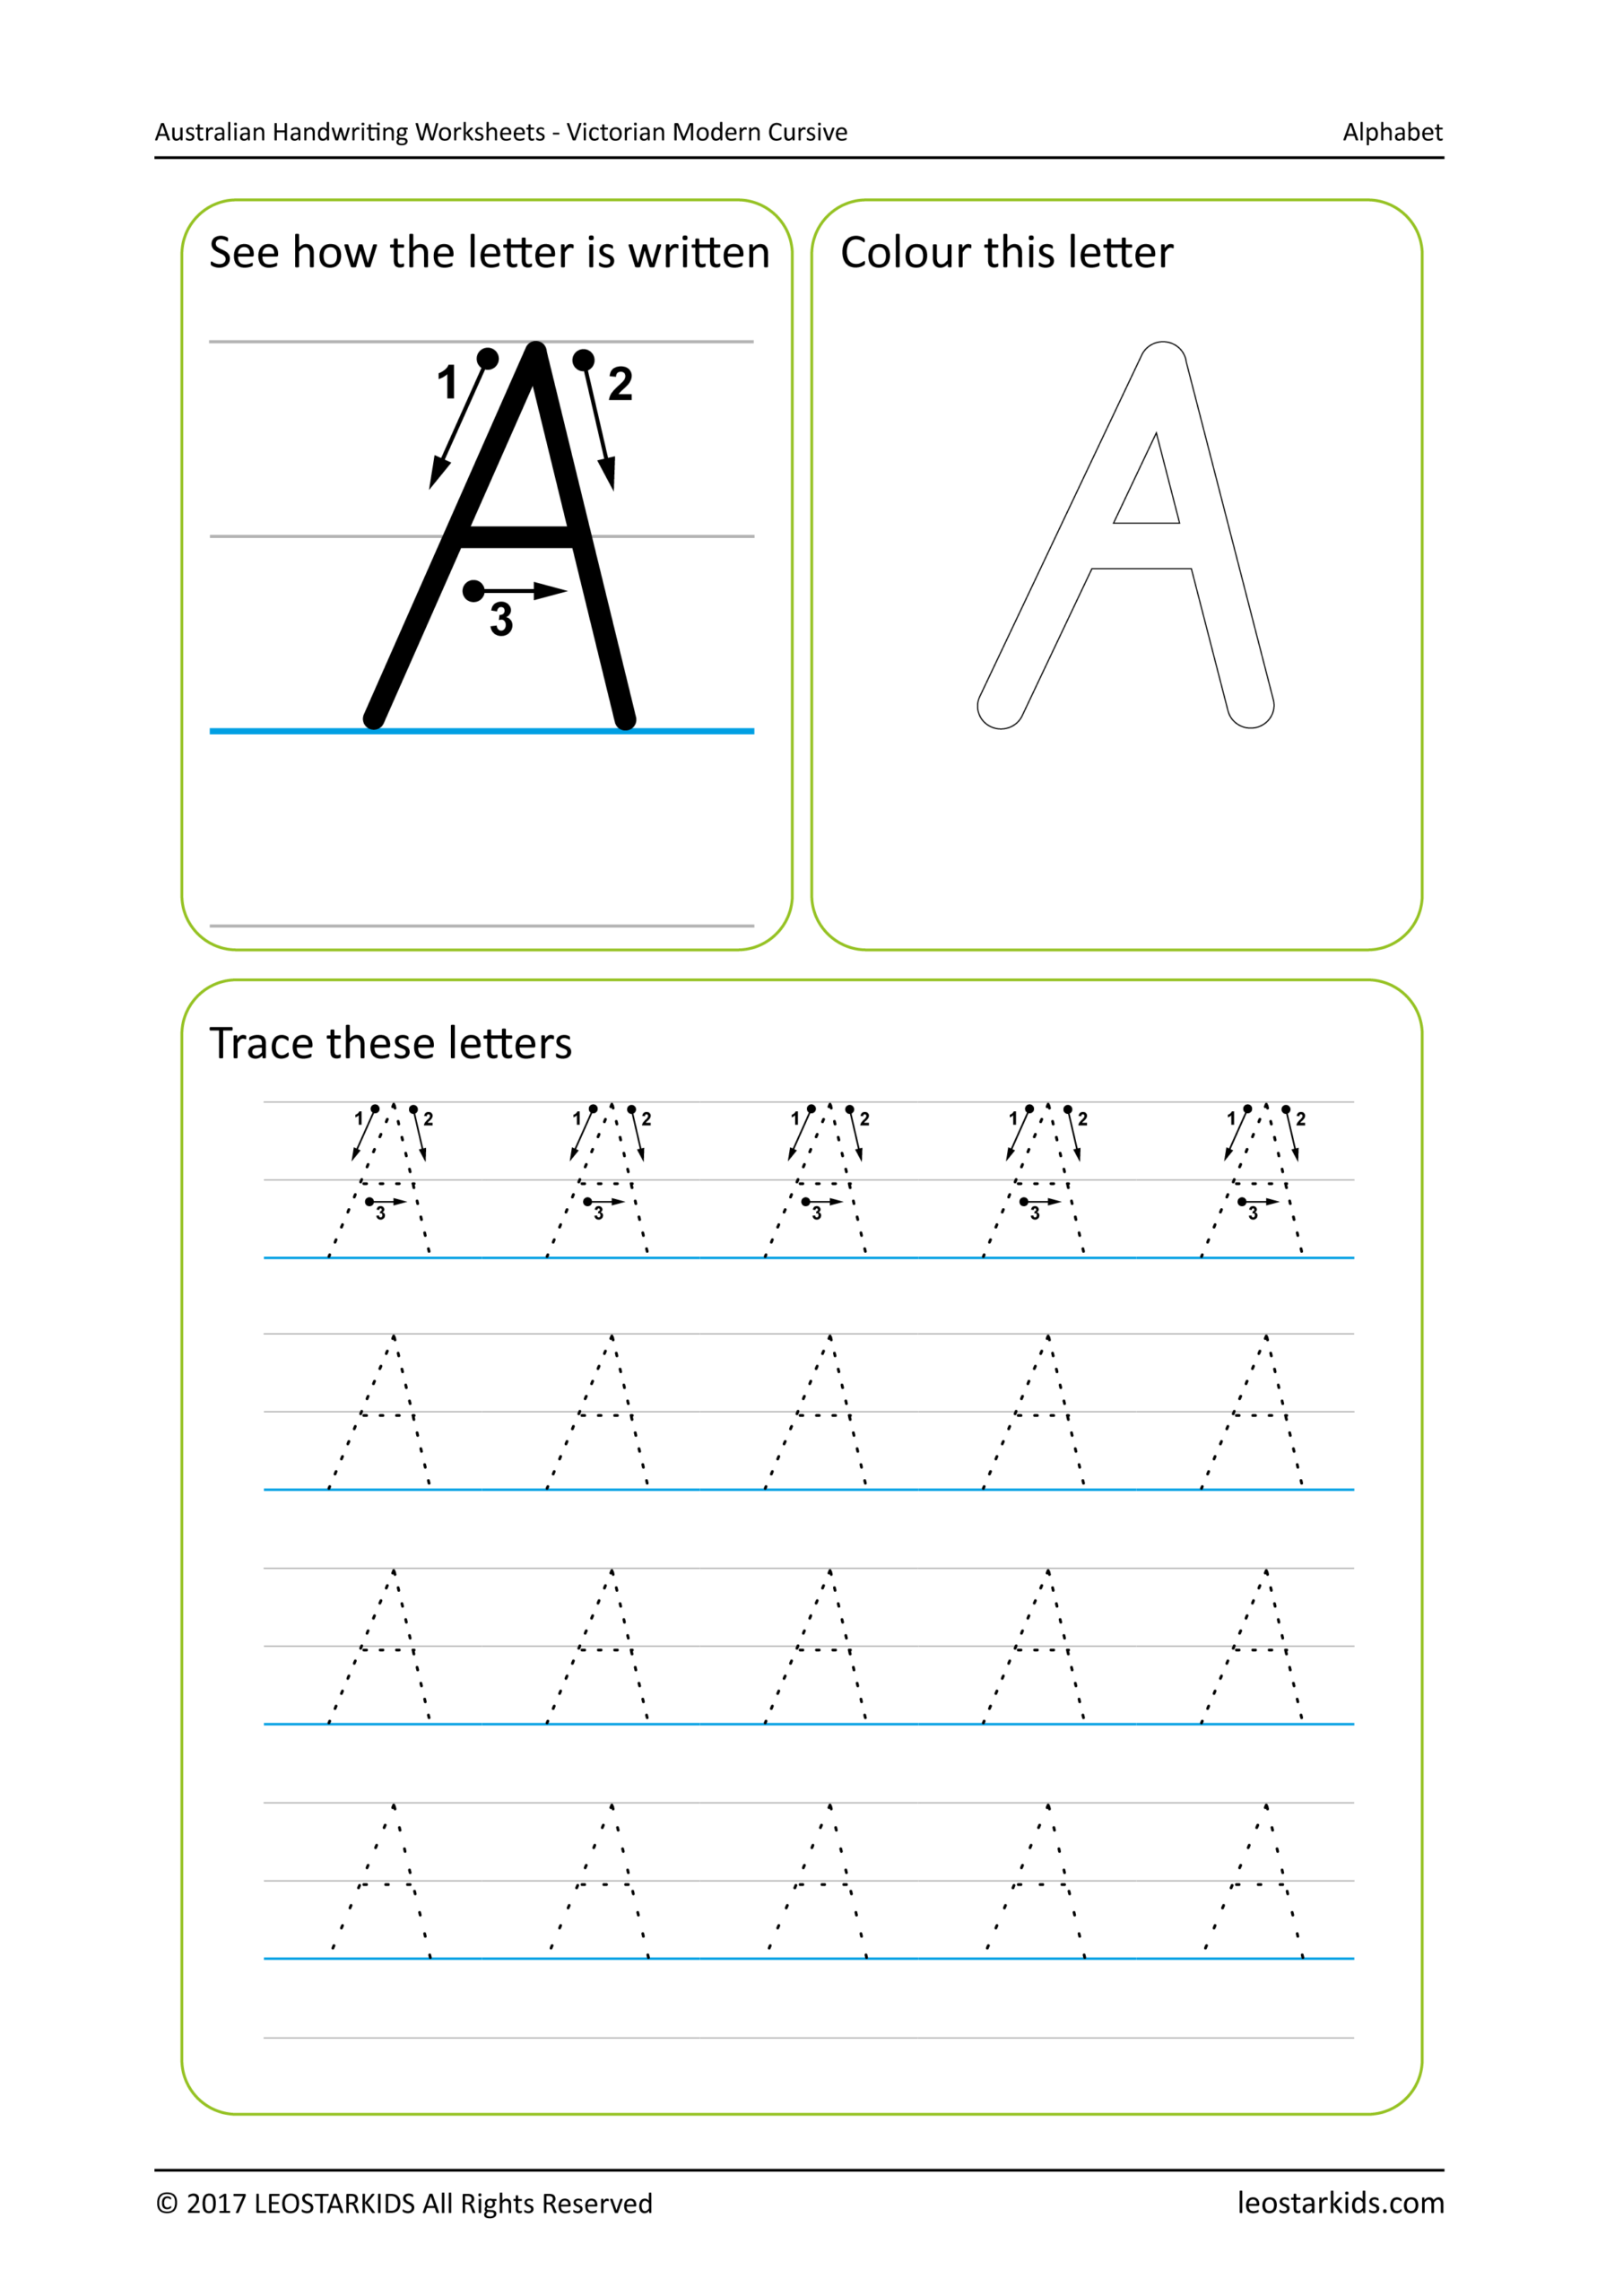 Australian Handwriting Worksheets - Victorian Modern Cursive pertaining to Name Tracing Template Qld Font